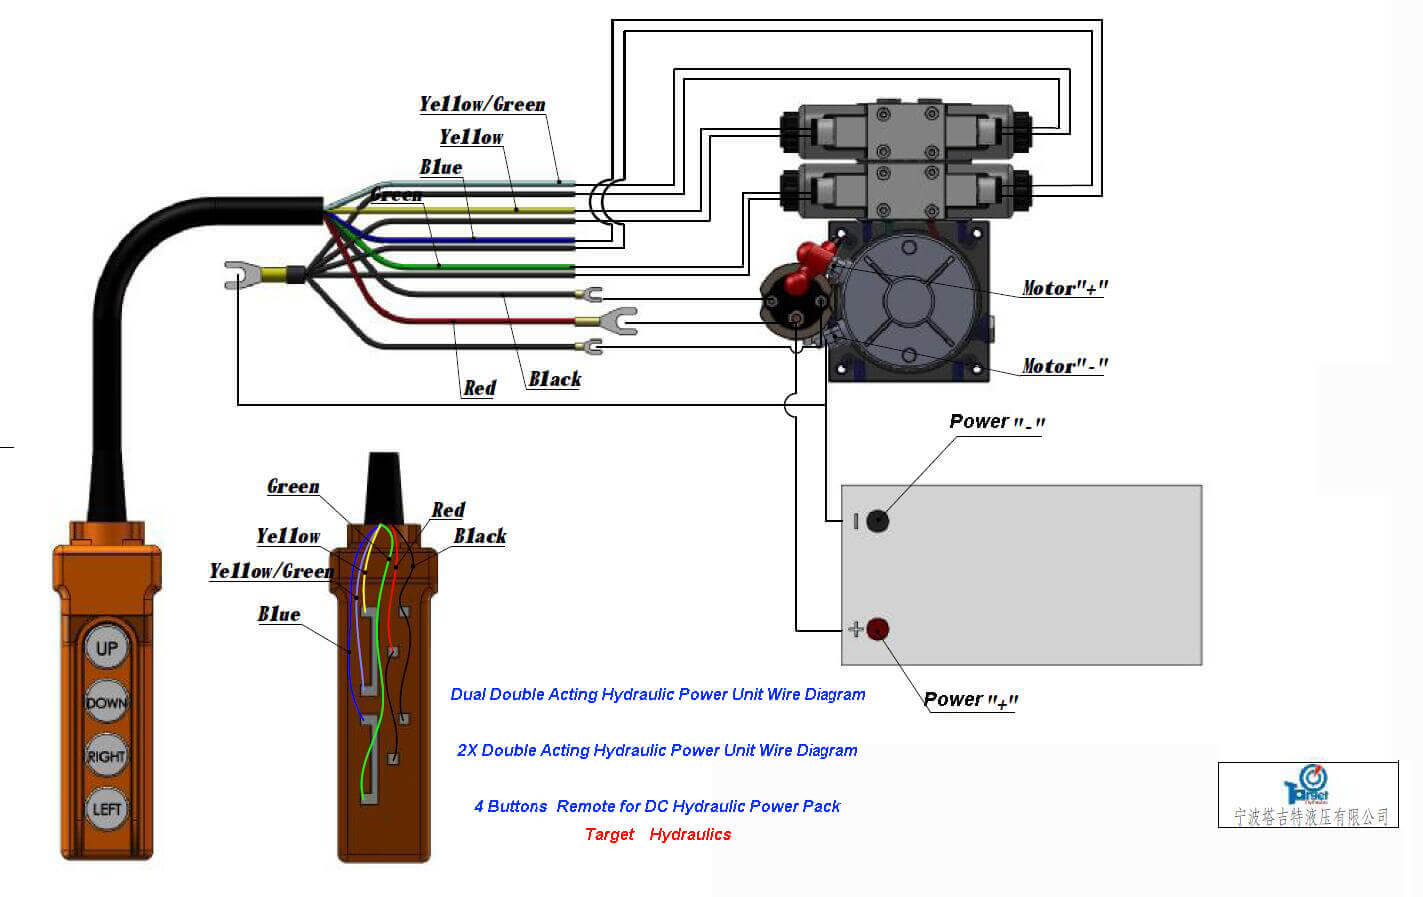 how to wire hydraulic power pack power unit diagram design rh target hydraulics com  12 volt hydraulic power pack wiring diagram